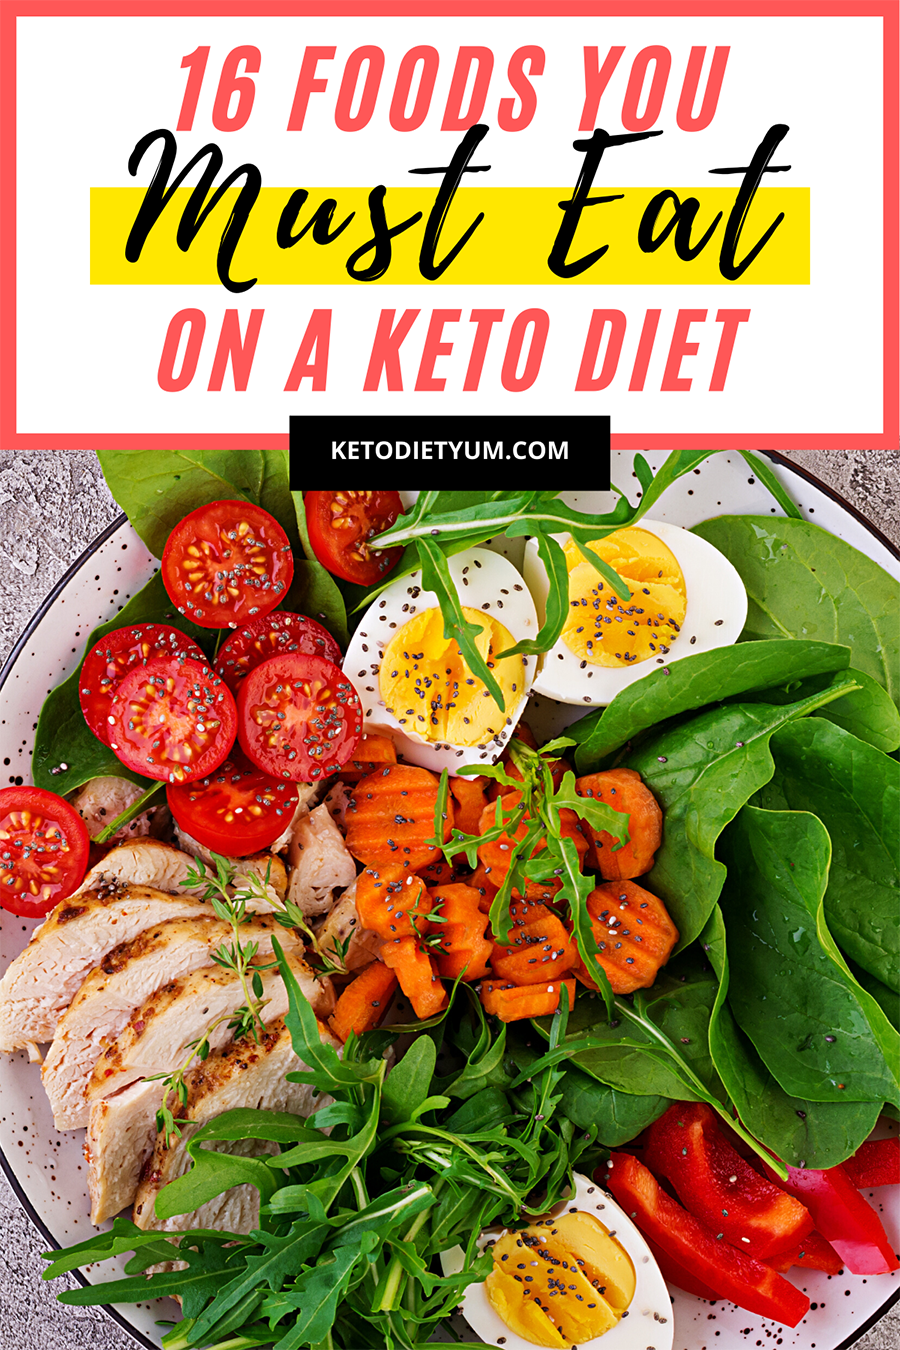 Keto Food List What To Eat and Avoid on the Keto Diet